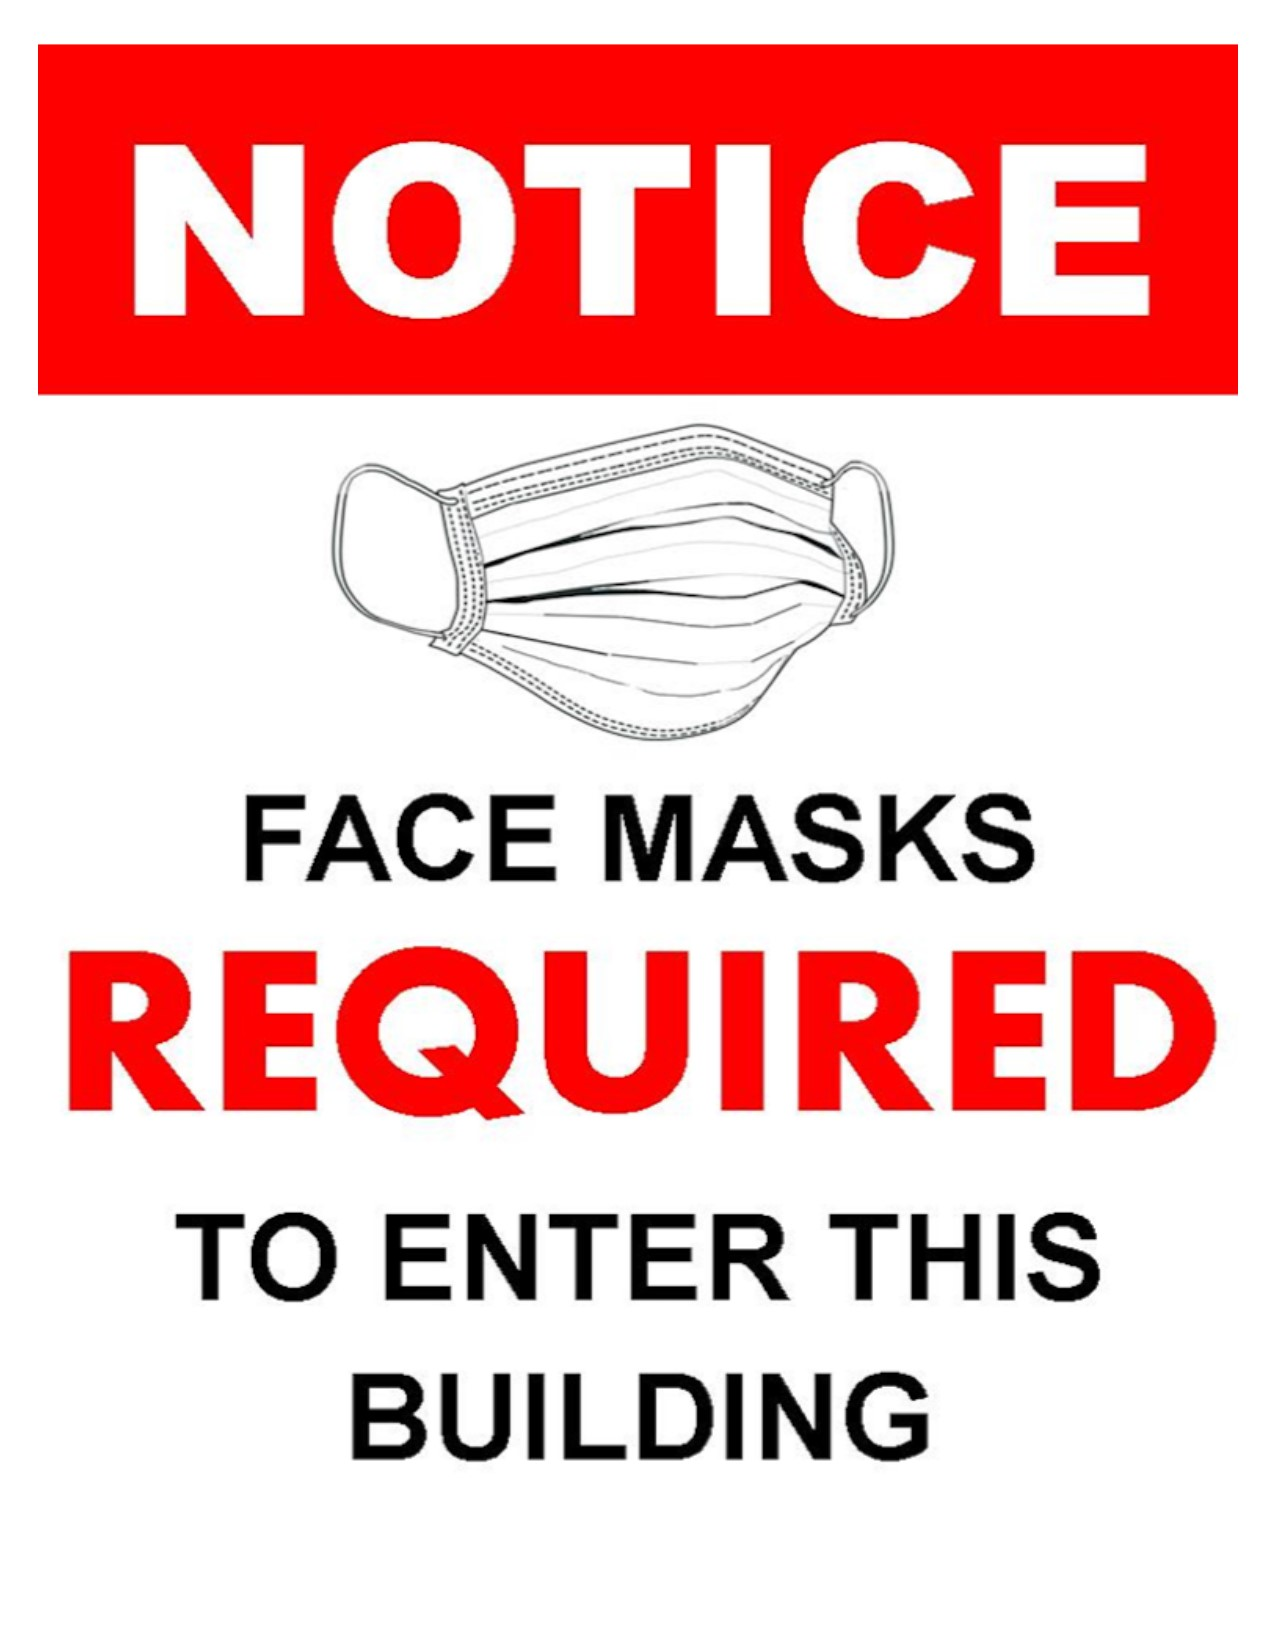 Masks are now Required